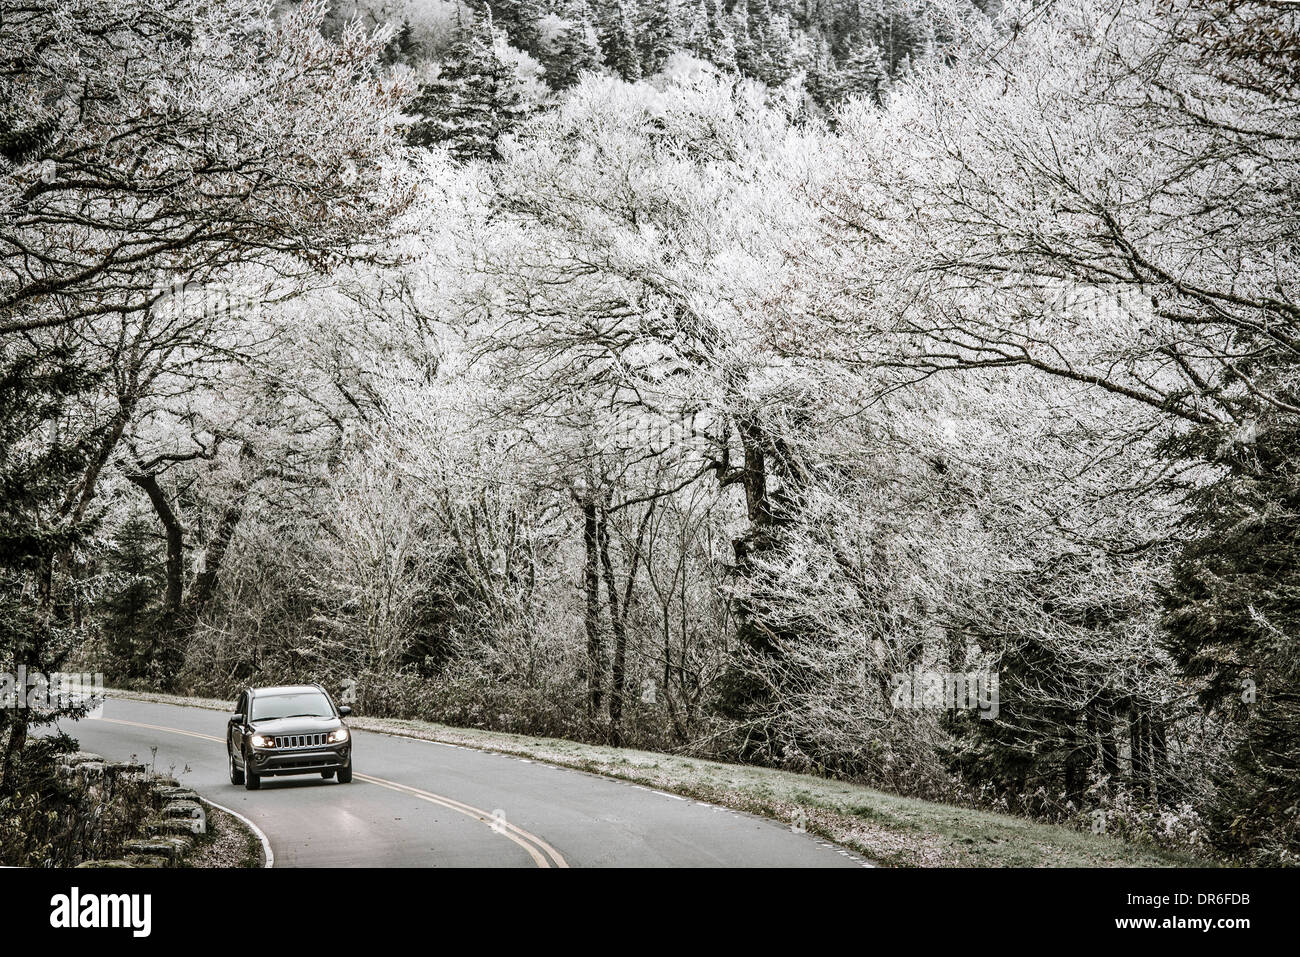 Smoky Mountains roadway in Tennessee, USA. - Stock Image